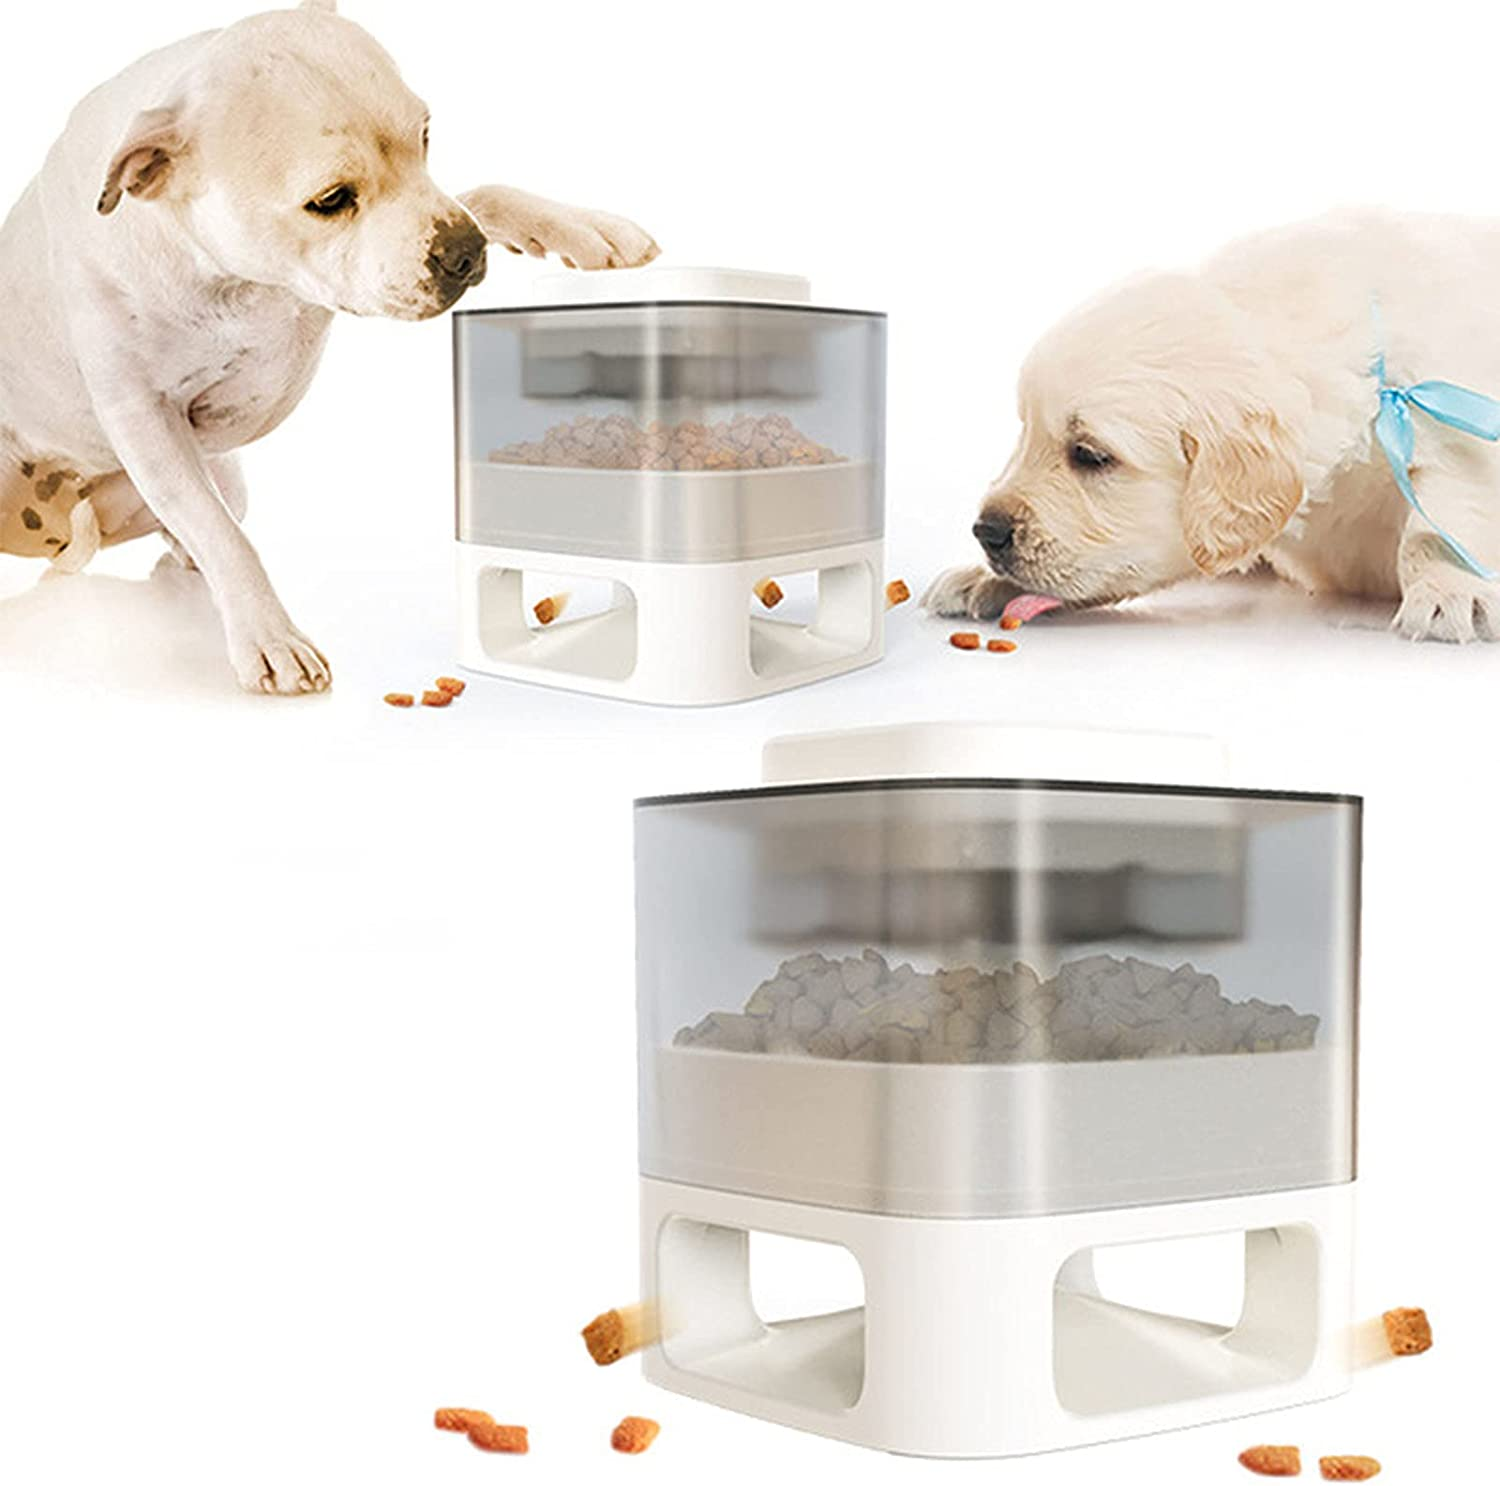 WFGZQ Fun Feeder Square Pet Surprise price Foo Dog Slow Bowl Automatic Super beauty product restock quality top!